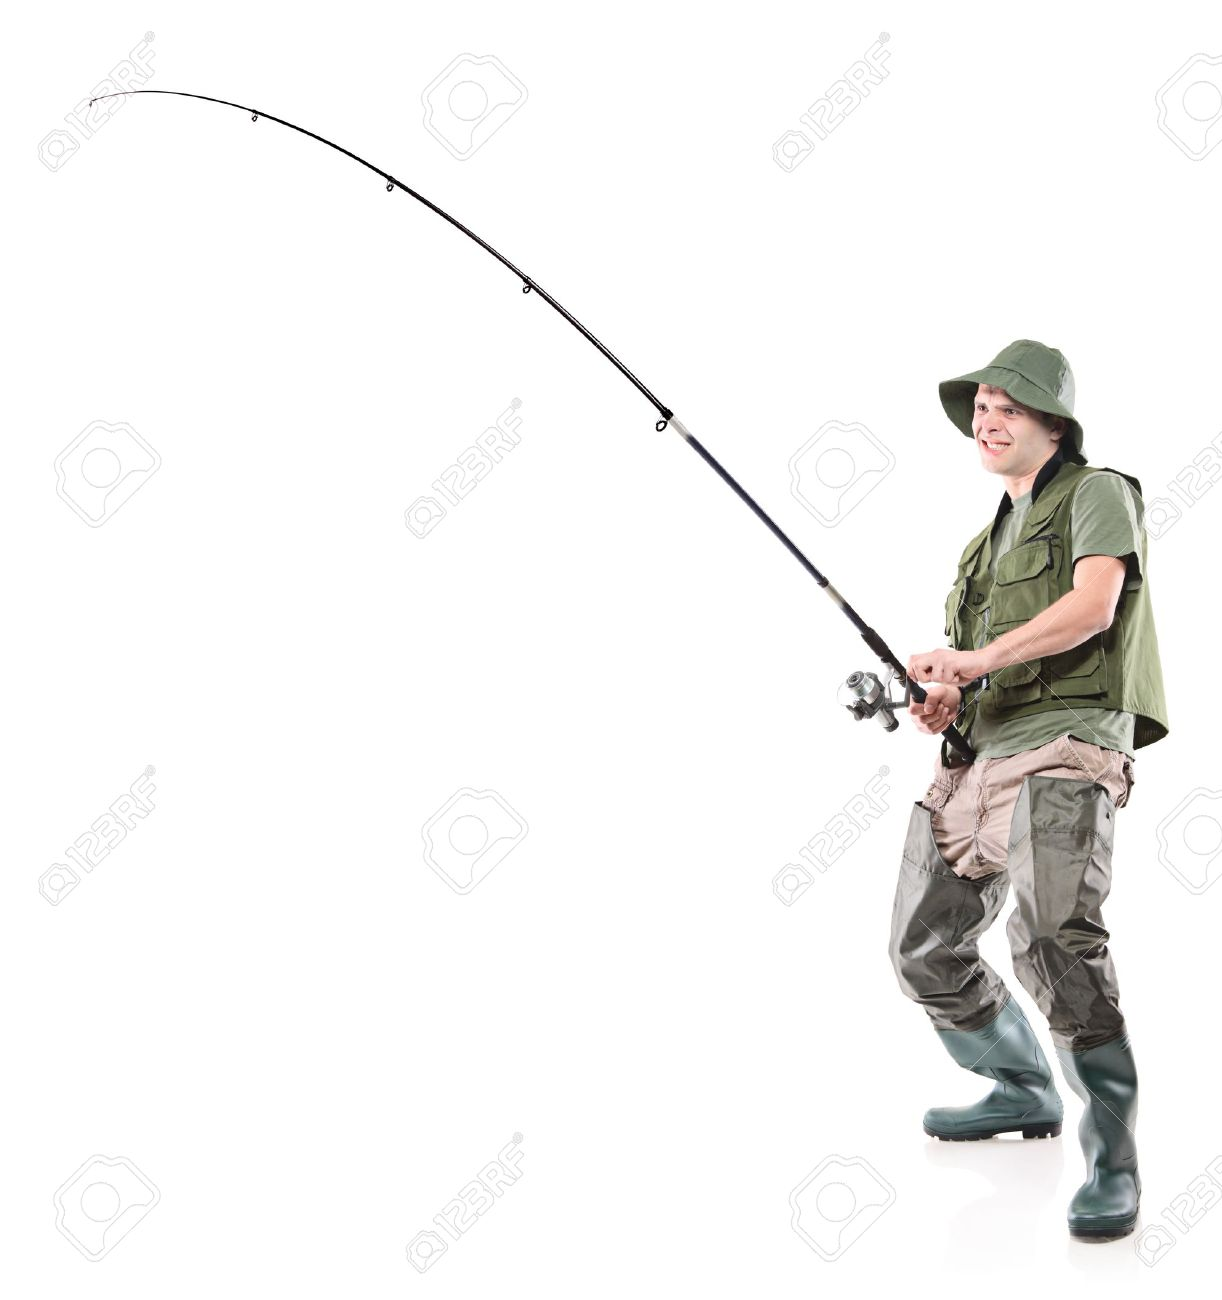 Full length portrait of a fisherman holding a fishing pole isolated on white background - 10765248